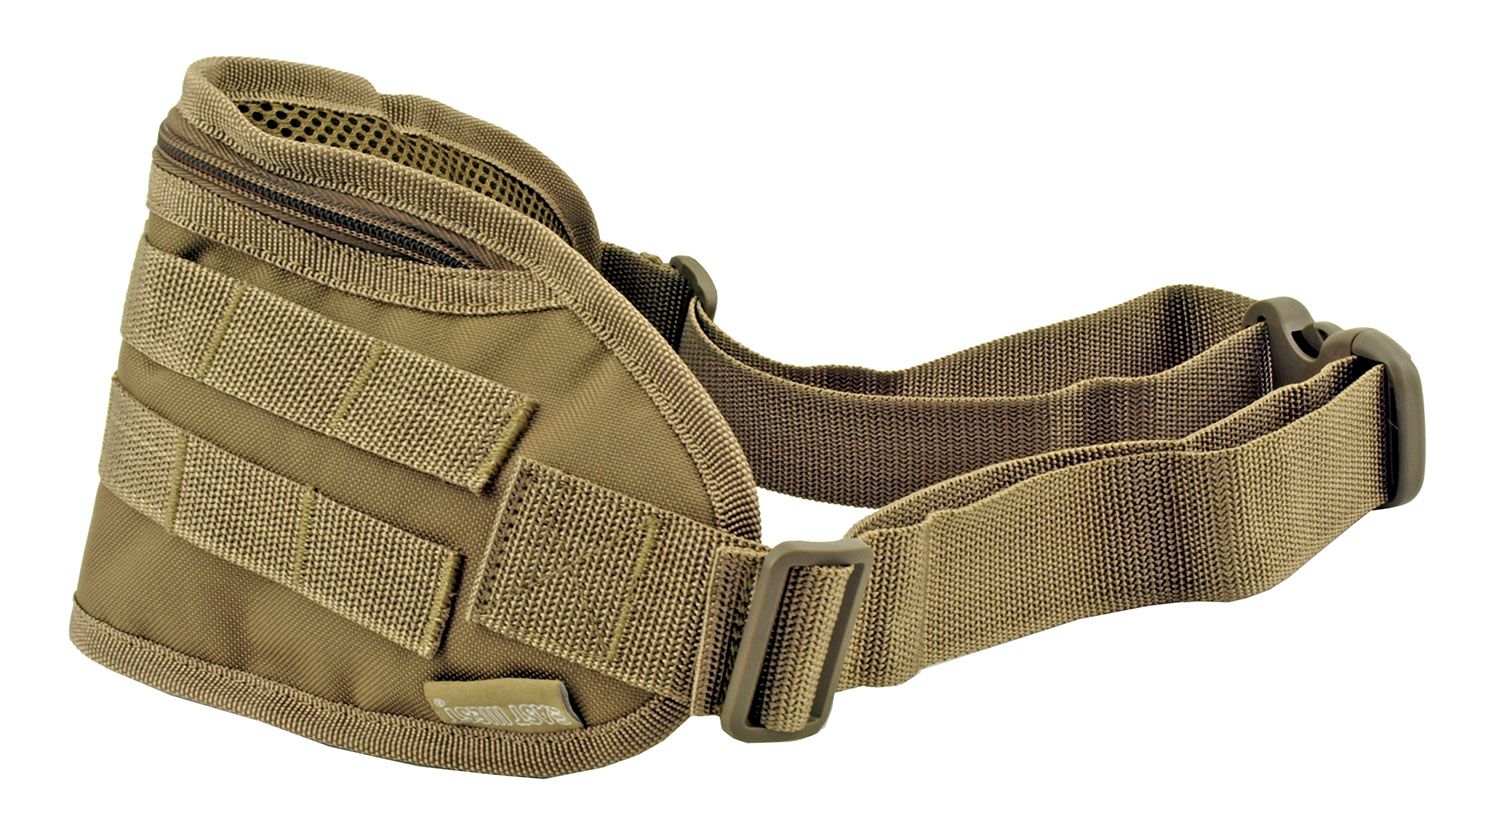 Tactical Fanny Pack Hip Bag with Molle Strap - Desert Tan